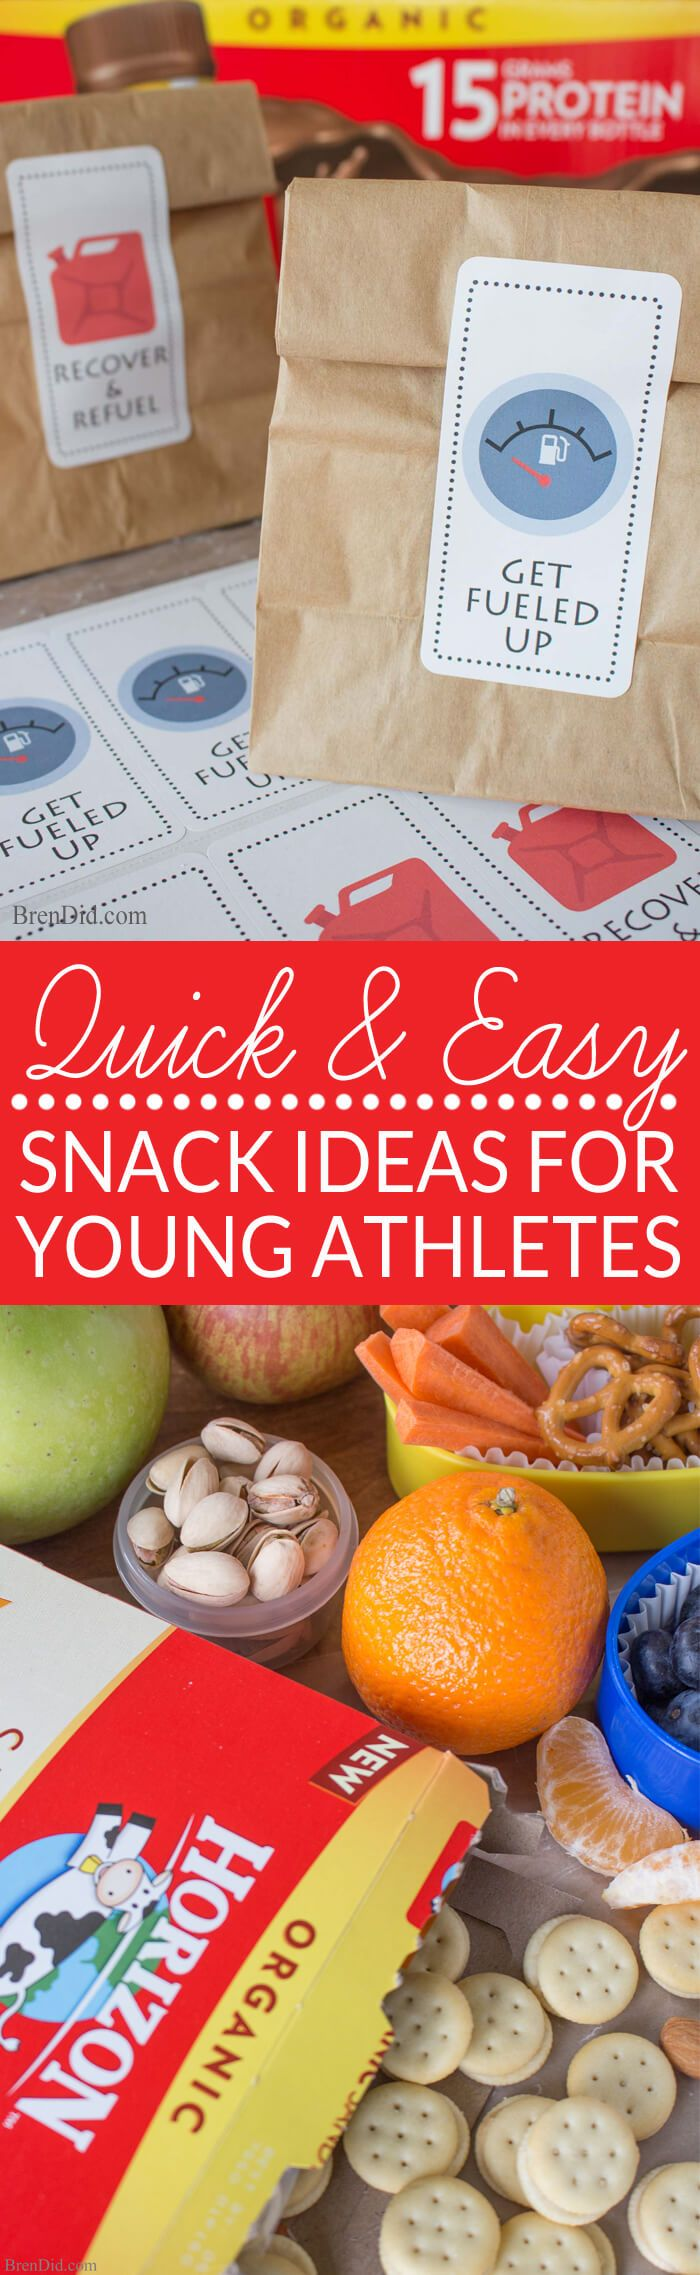 It takes nutritious foods to fuel kids for sports. Skip the protein bars and…